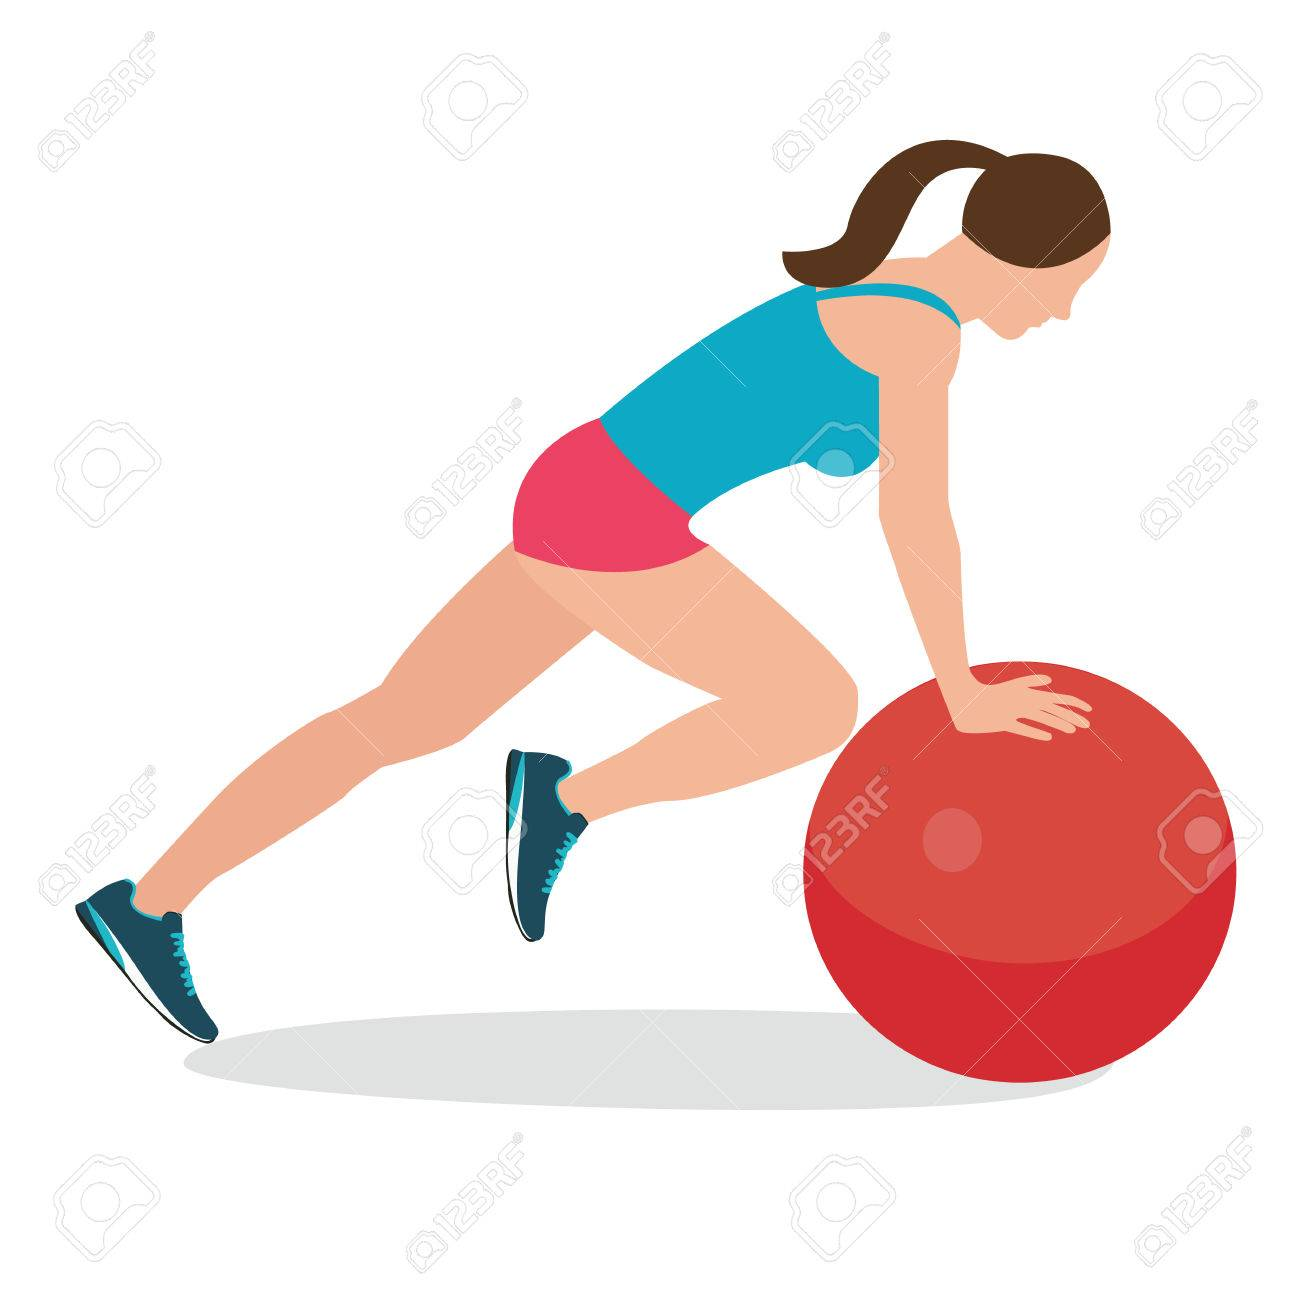 Vector - woman fitness position using stability ball excercise gym training  workput balance female vector